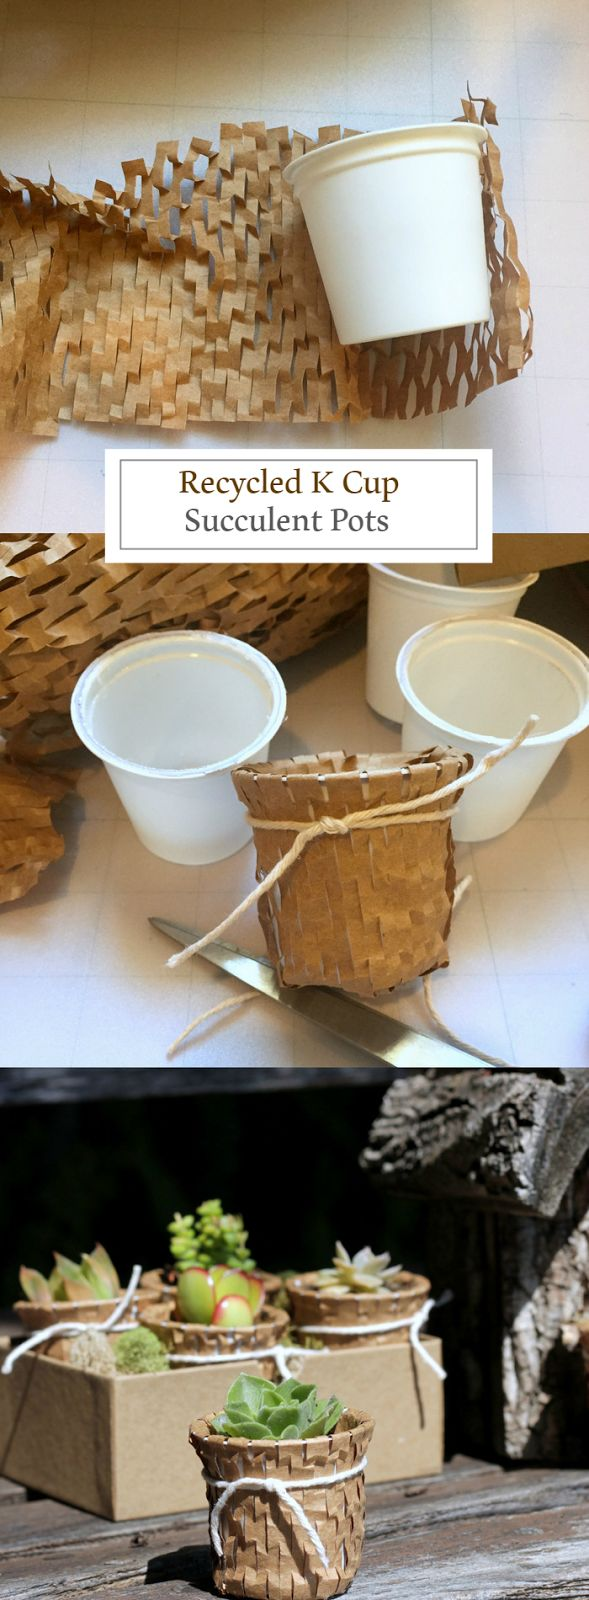 Prevent unnecessary waste and recycle used K Cups by turning them into succulent pots, great for your home or to give as a gift. Click in for the complete guide, courtesy of Carolyn's Homework.